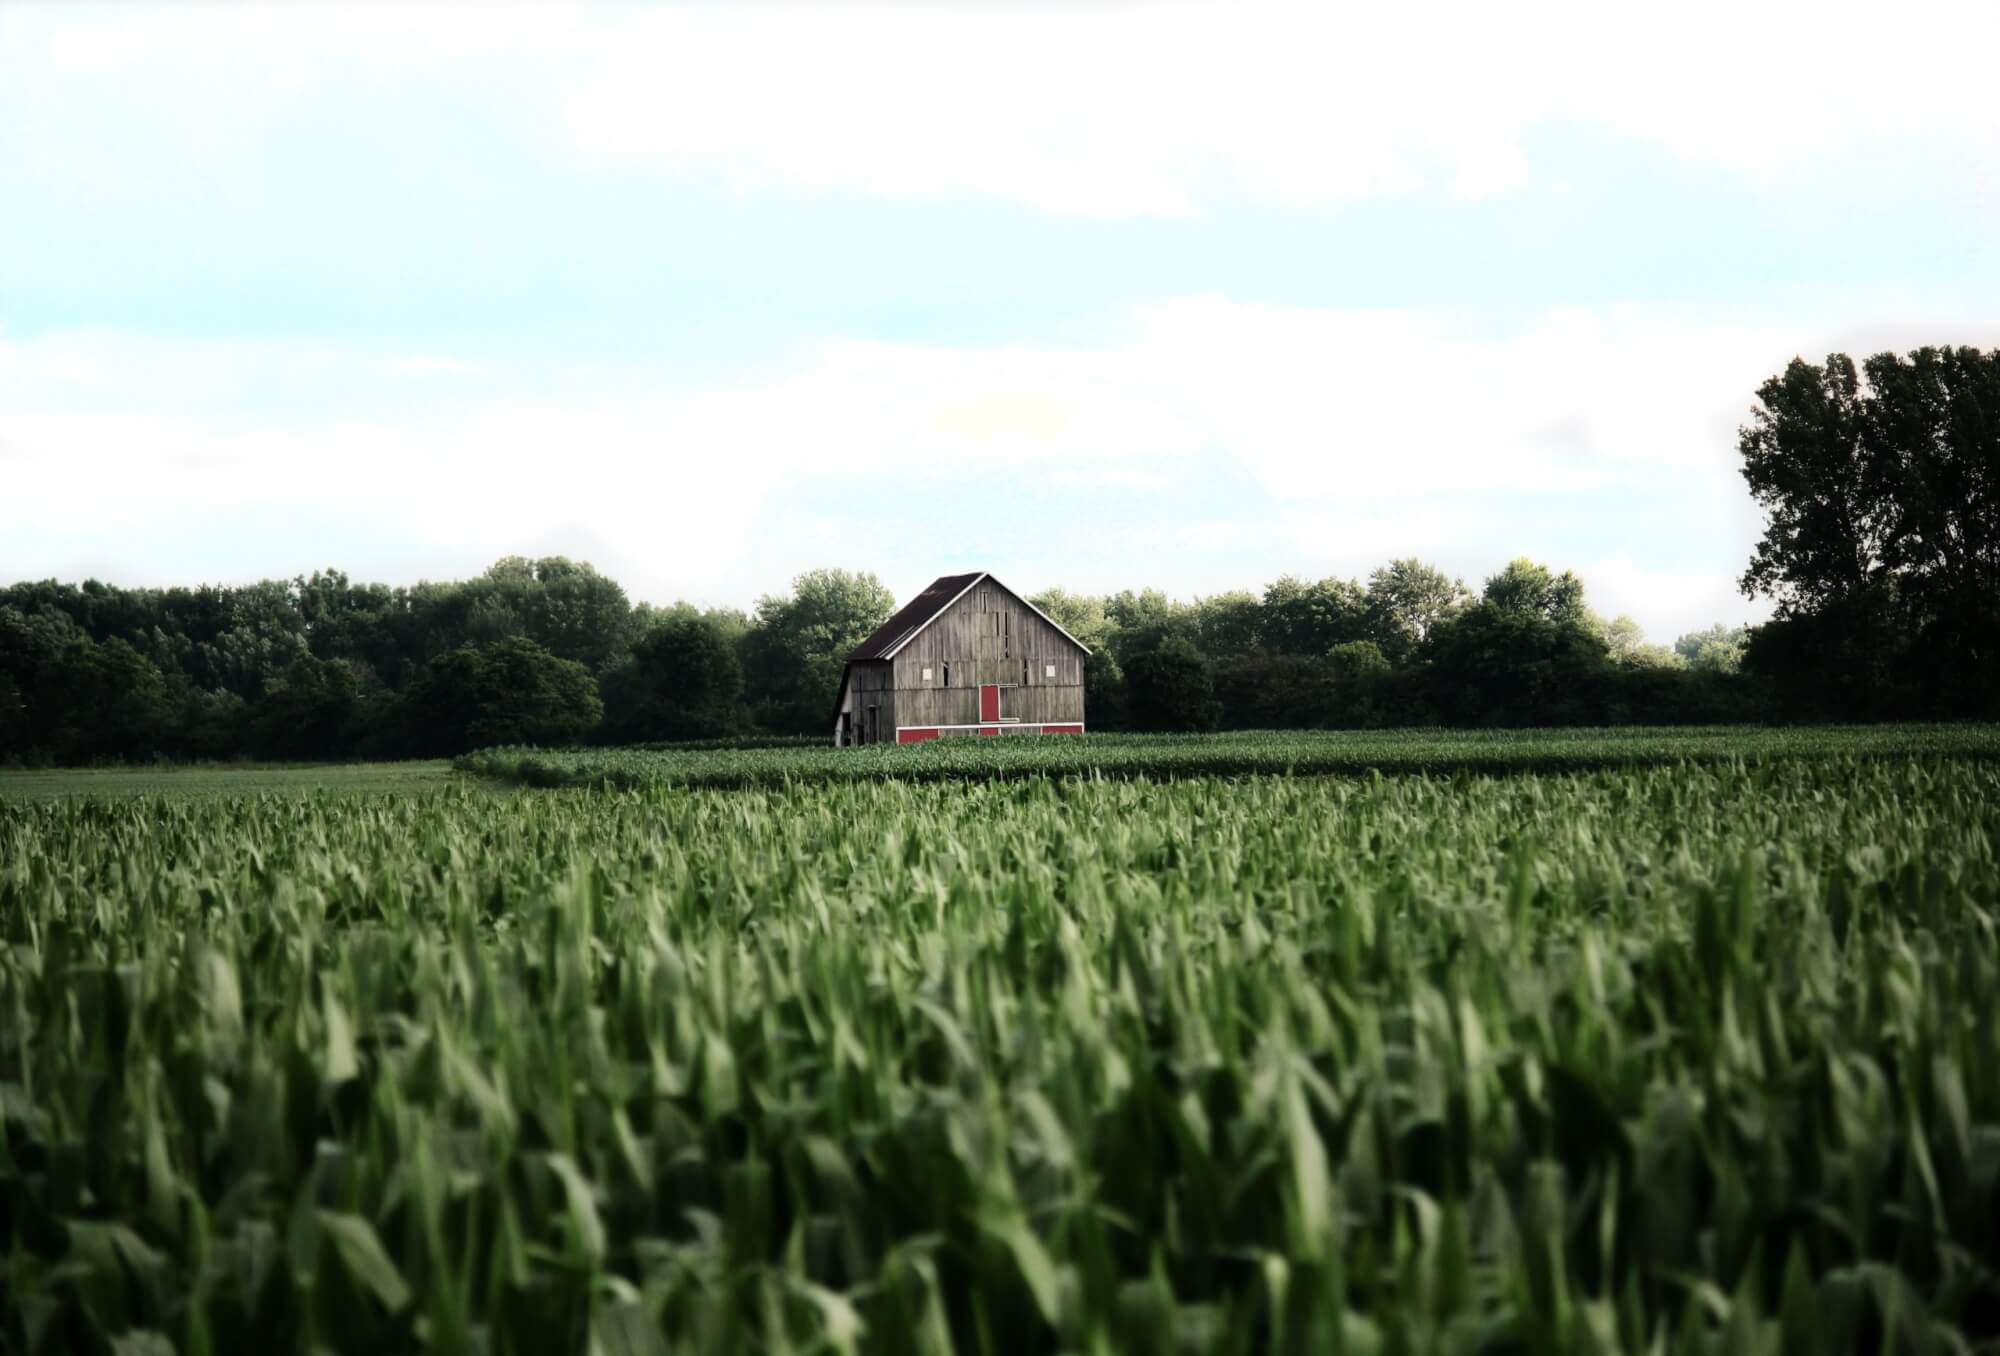 An image of an old barn.